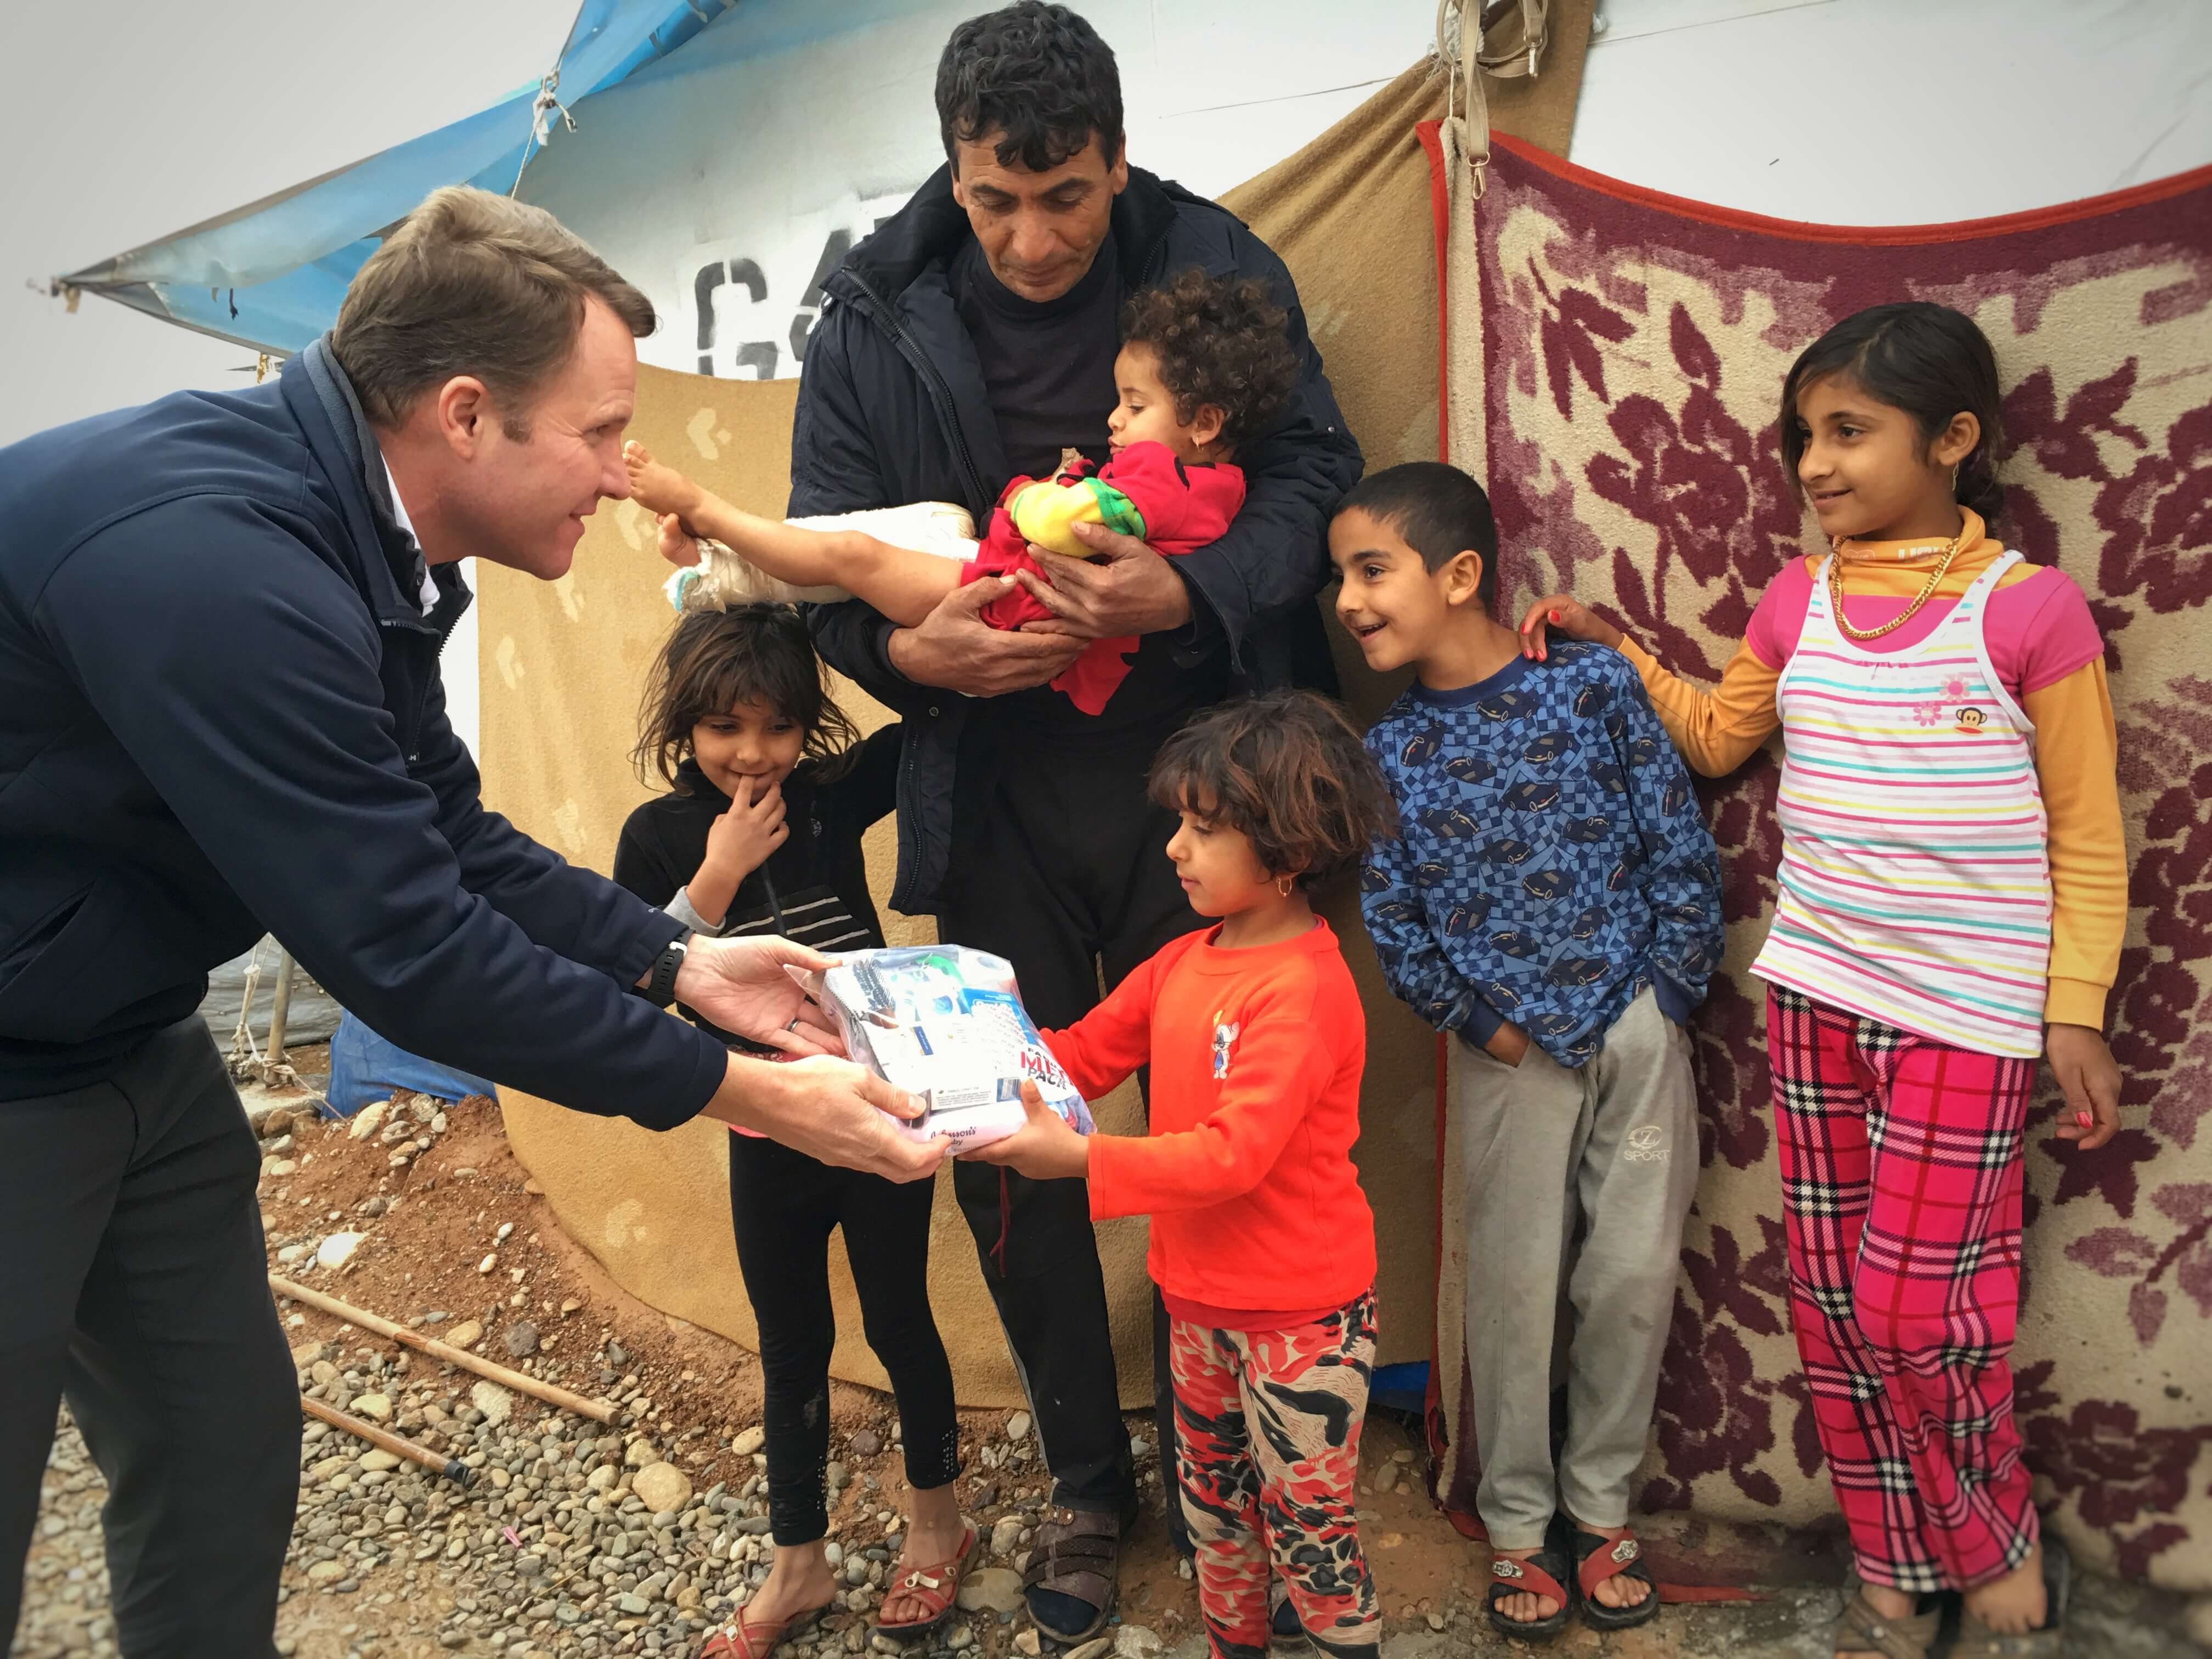 Jason Peters distributing Family Med Packs in Iraq